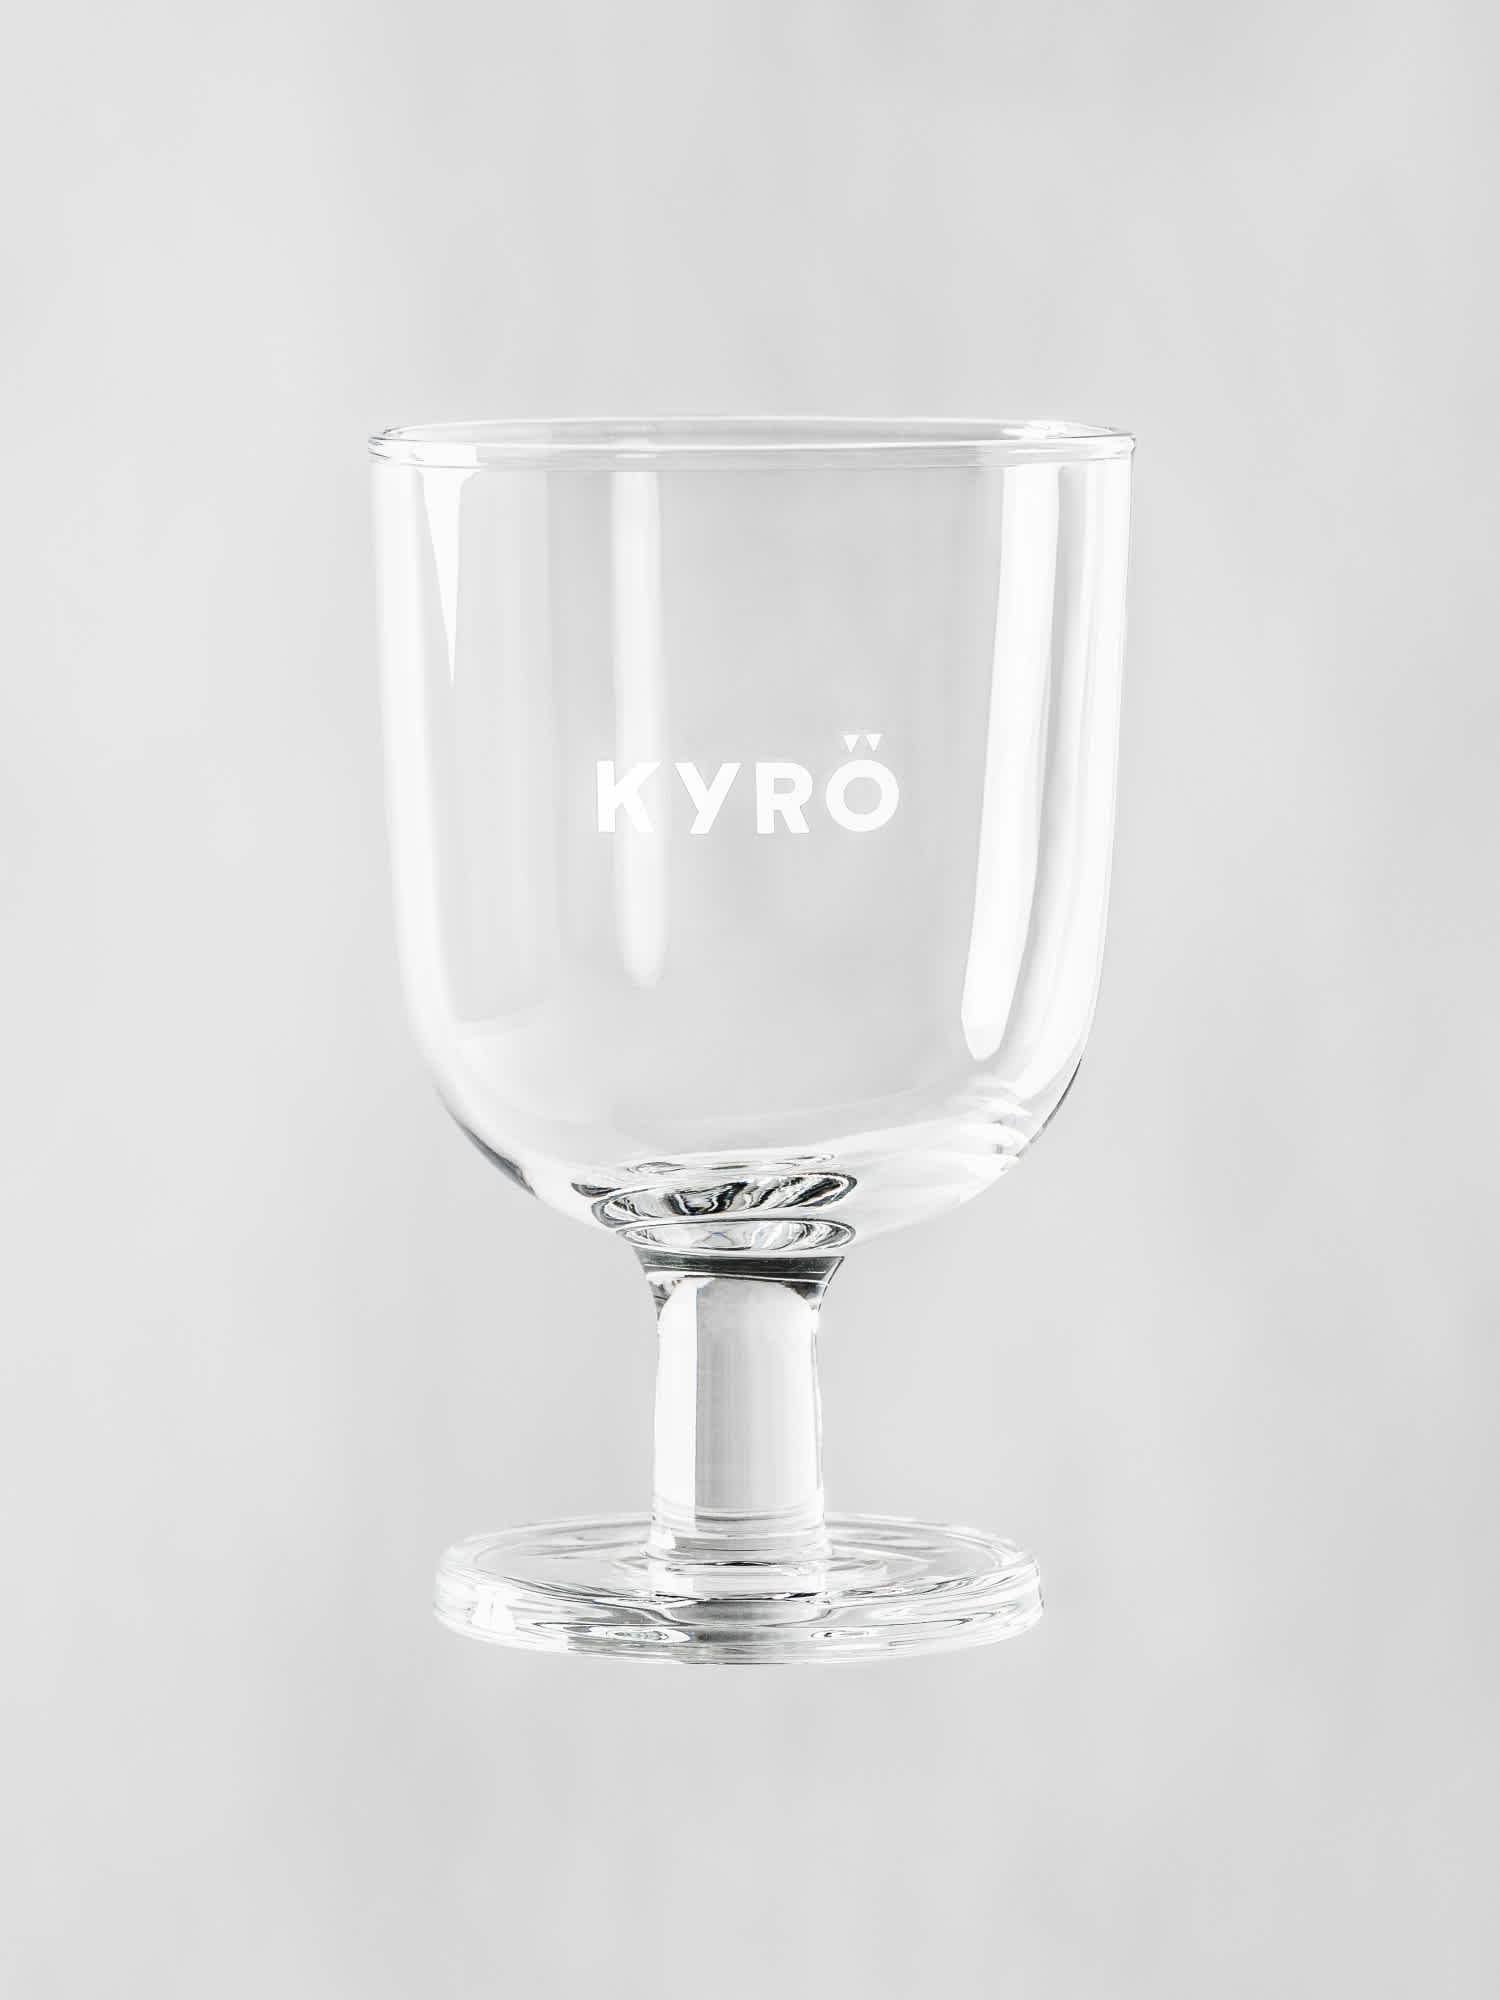 Kyrö branded cocktail glass